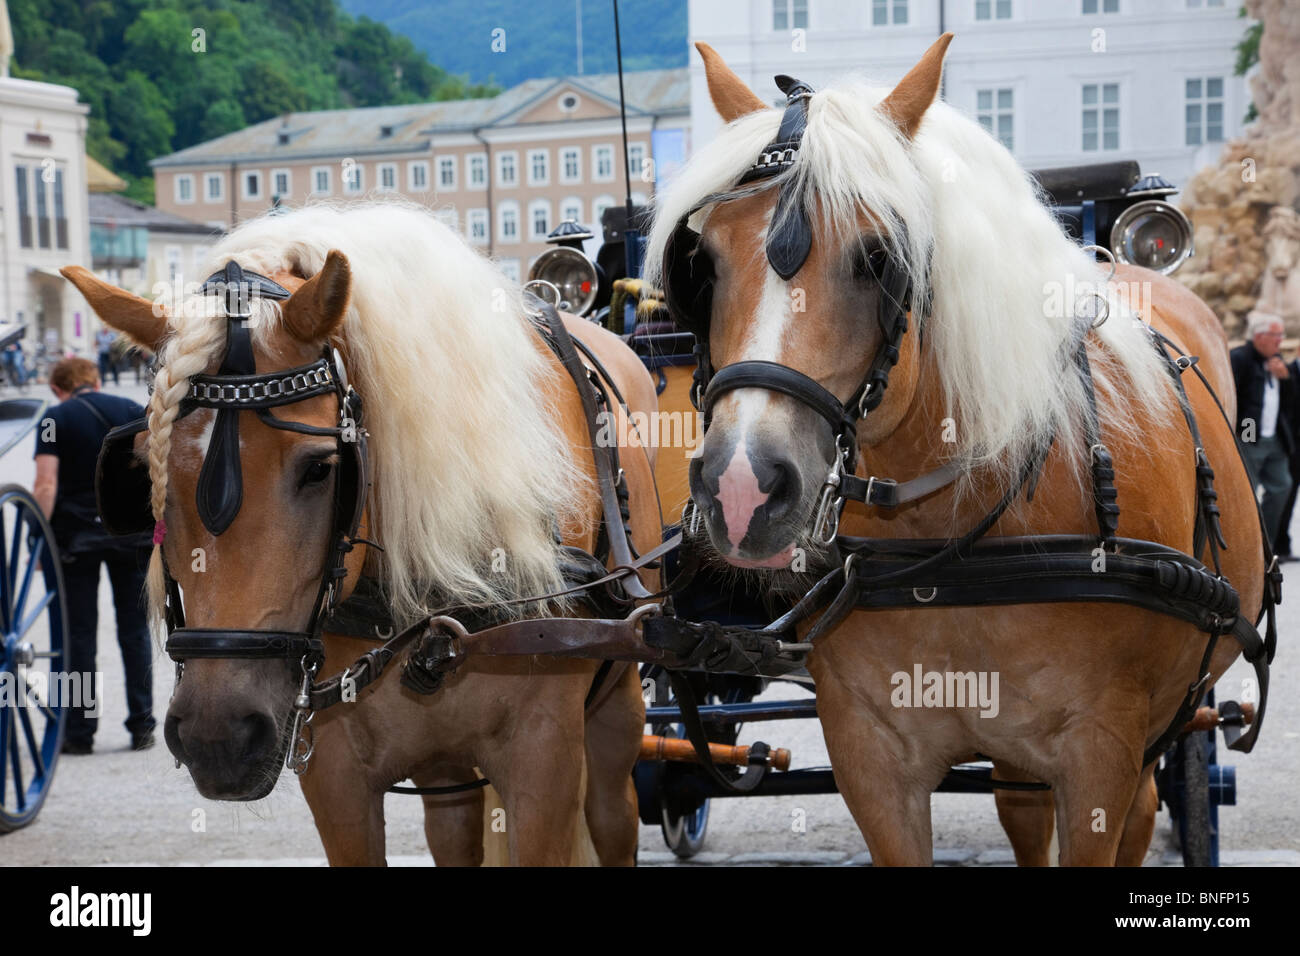 Tourist's horse drawn carriage for city tours with a pair of blond horses in harness. Residenz Platz, Salzburg, - Stock Image